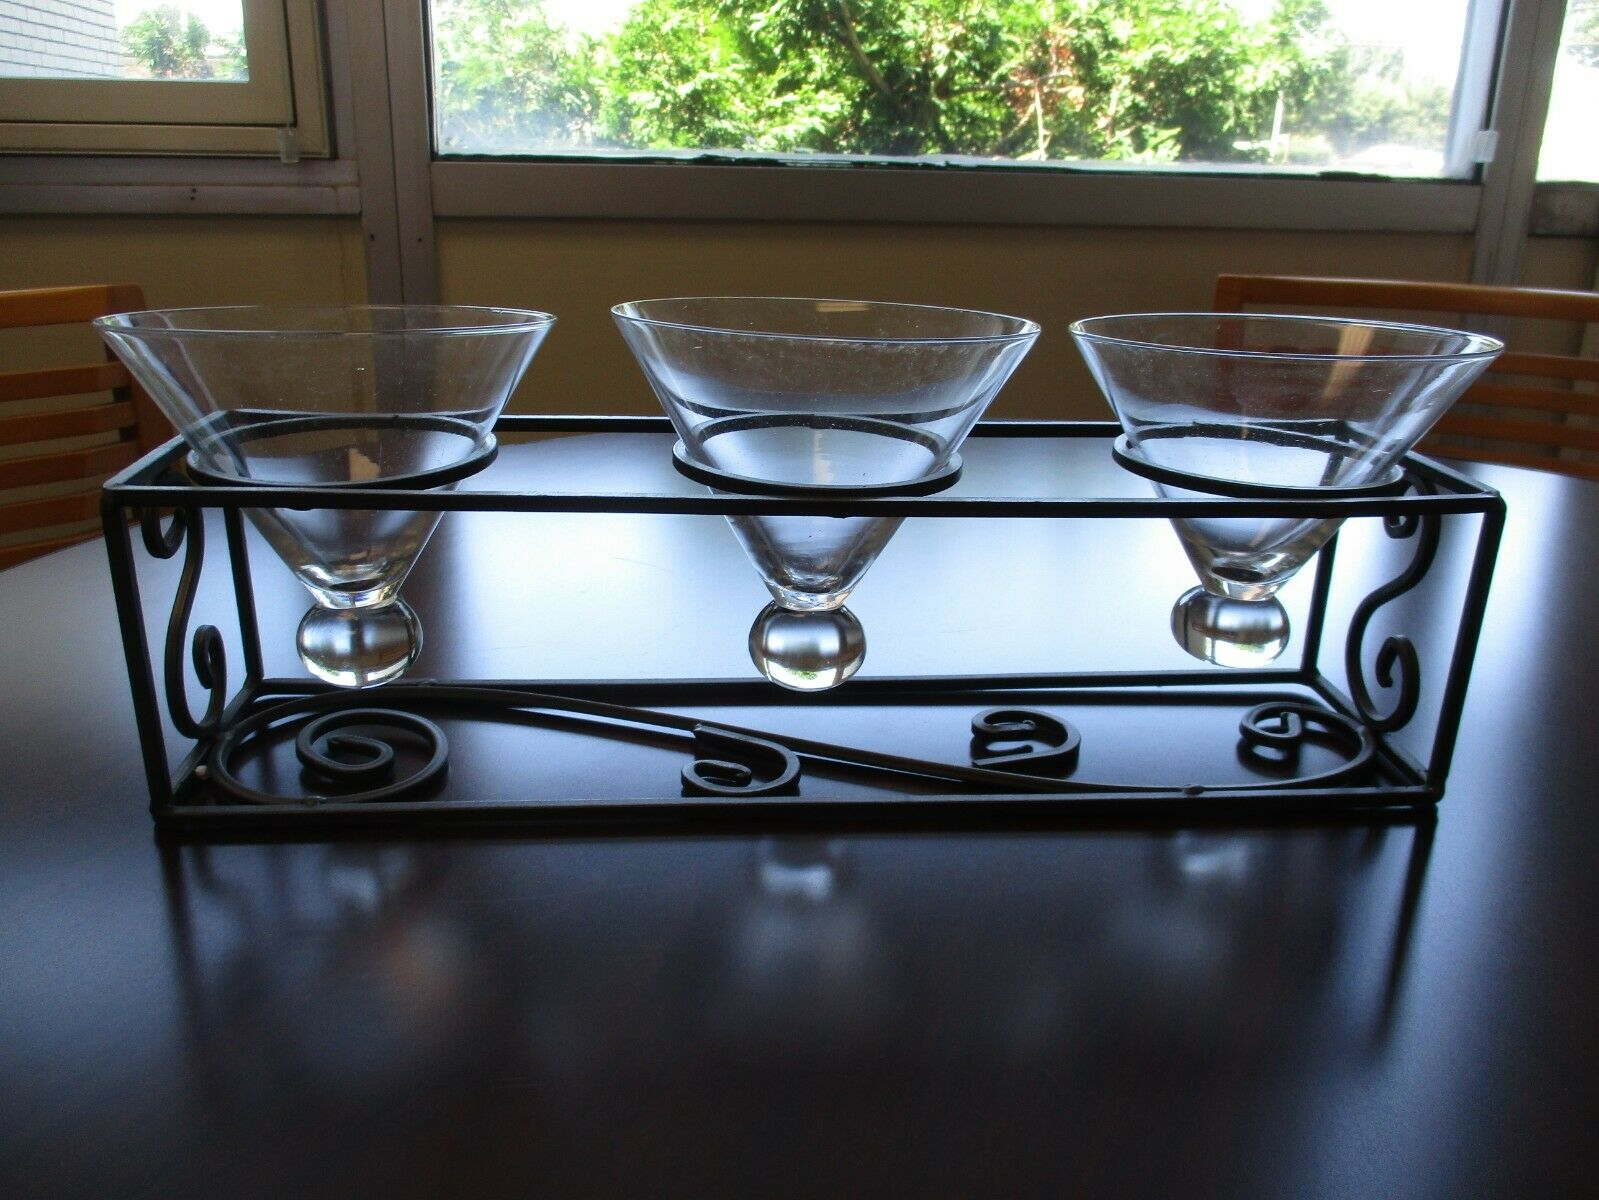 Home Expressions Prestige Triple Server Wrought Iron & Crystal New In Box